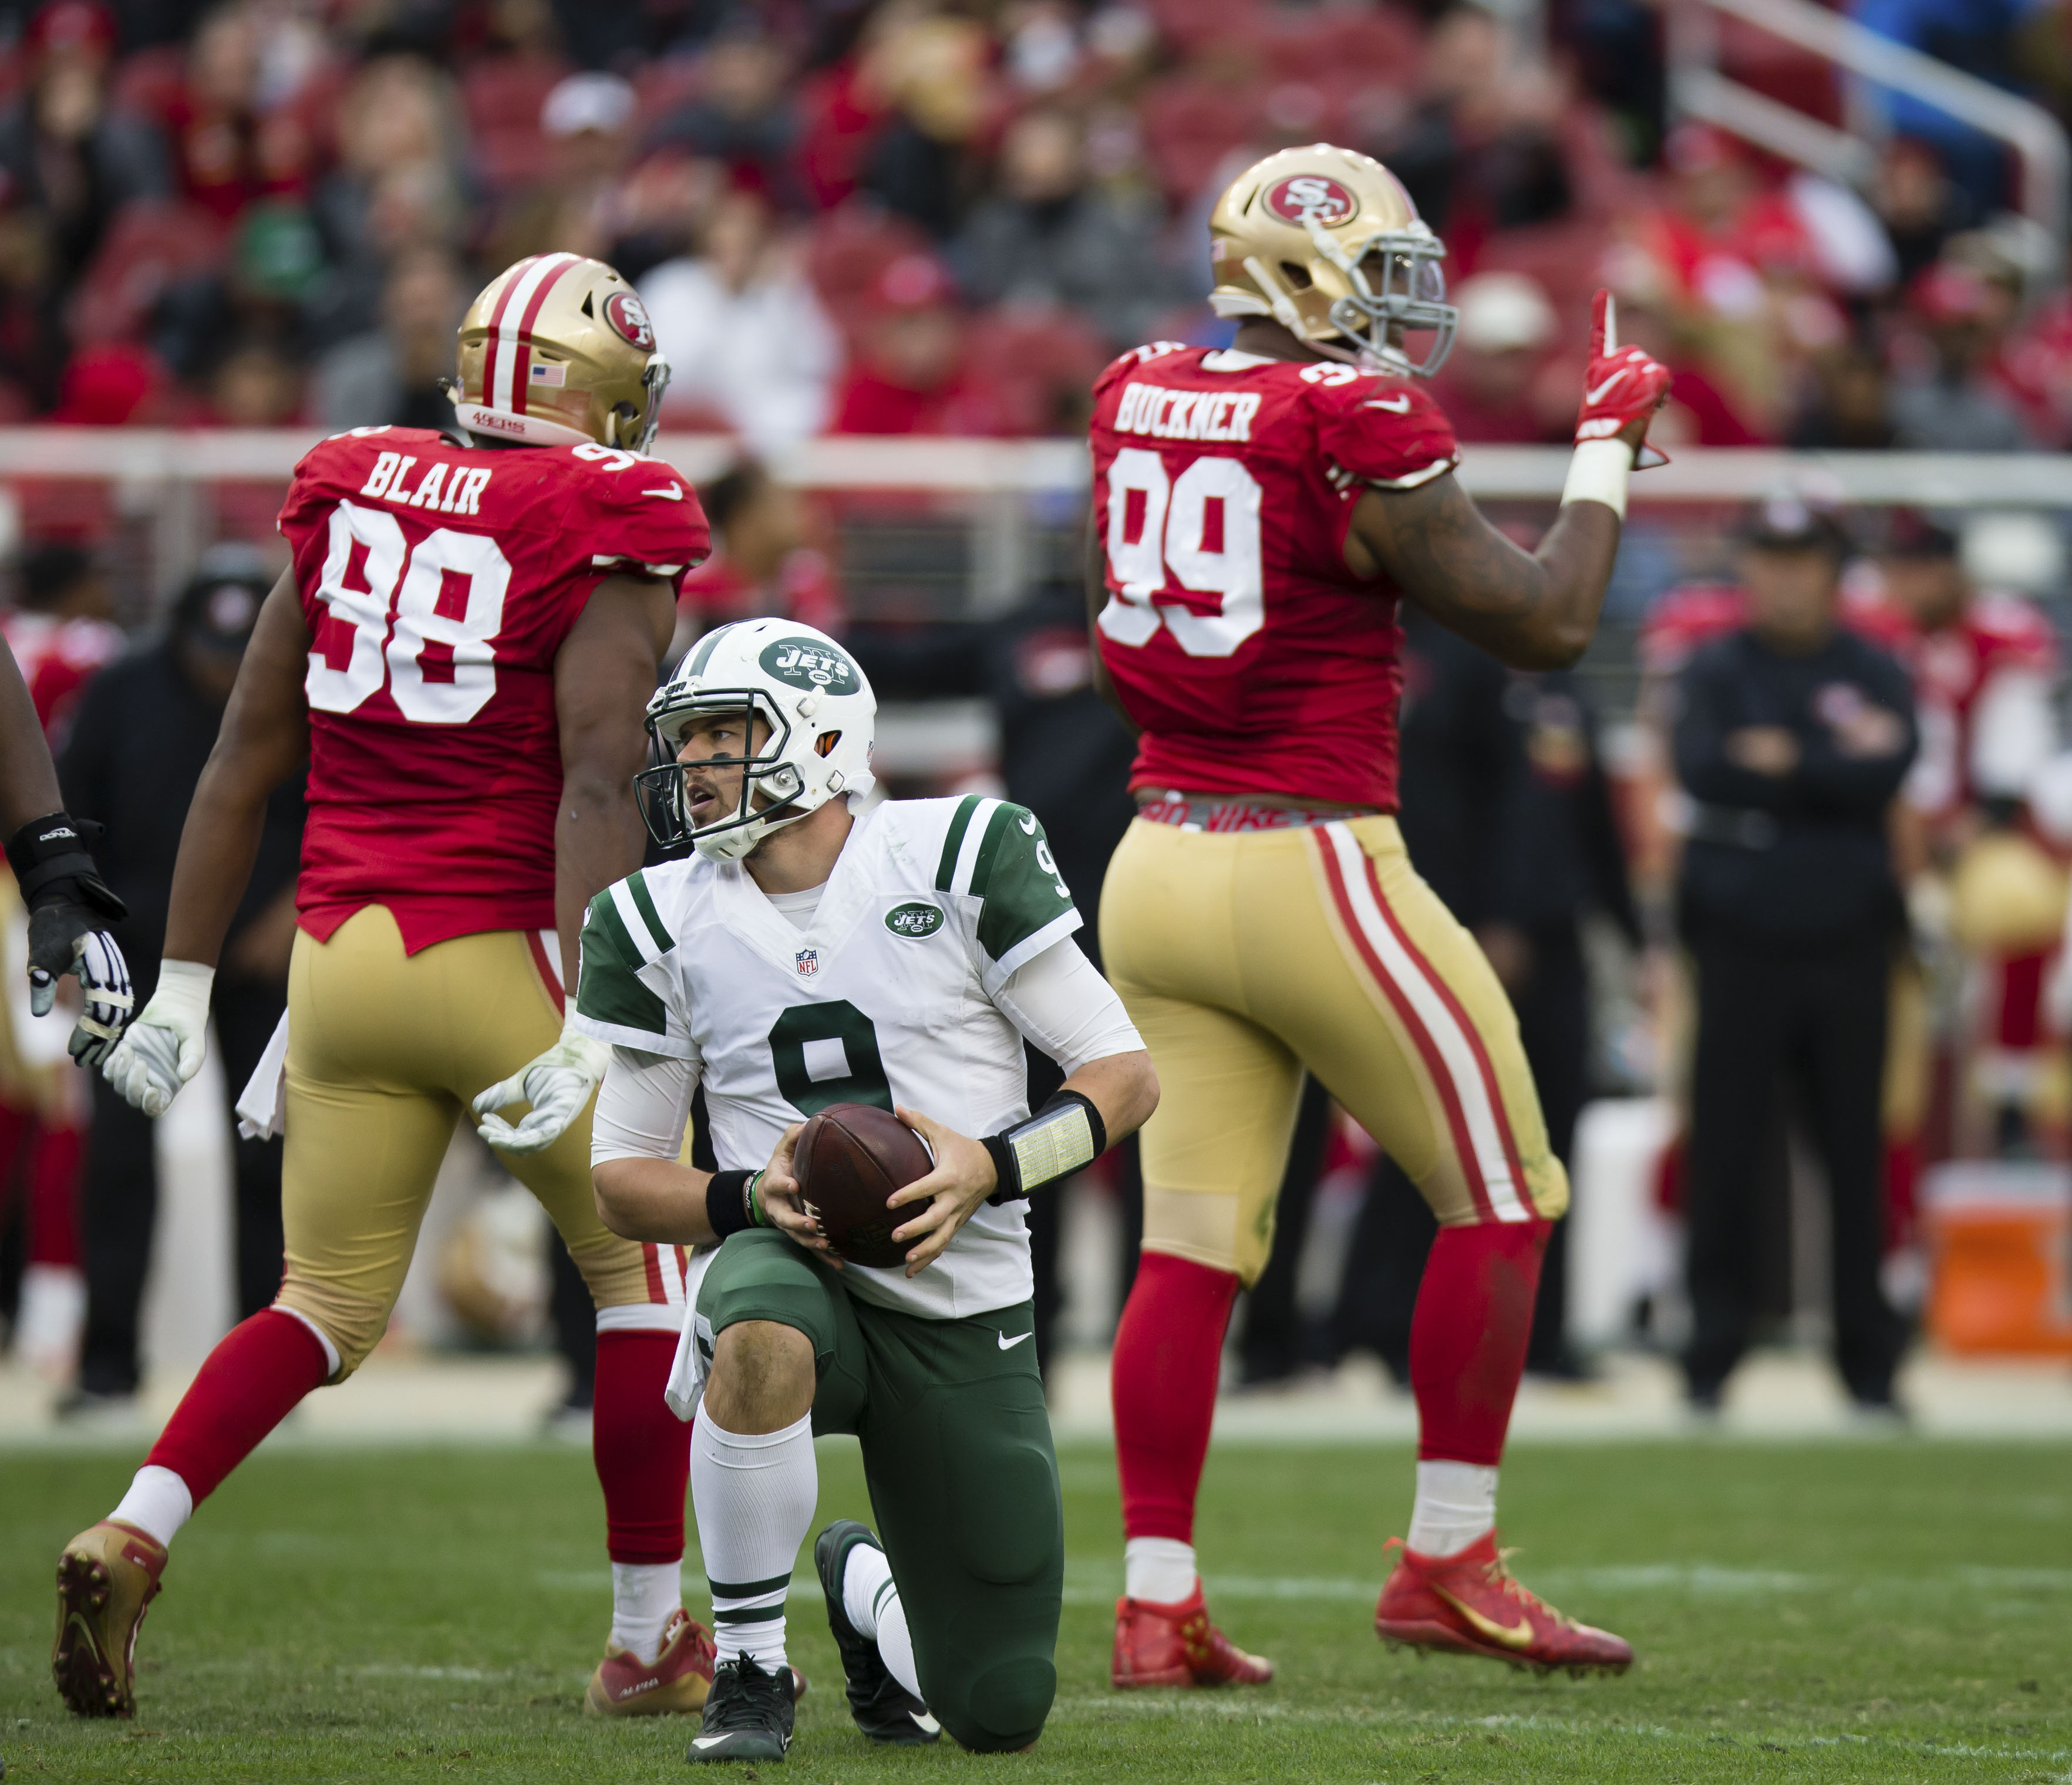 49ers 2017 nfl draft positional preview defensive line dec 11 2016 santa clara ca usa new york jets quarterback bryce petty 9 after being sacked by san francisco 49ers defensive end deforest buckner 99 voltagebd Gallery